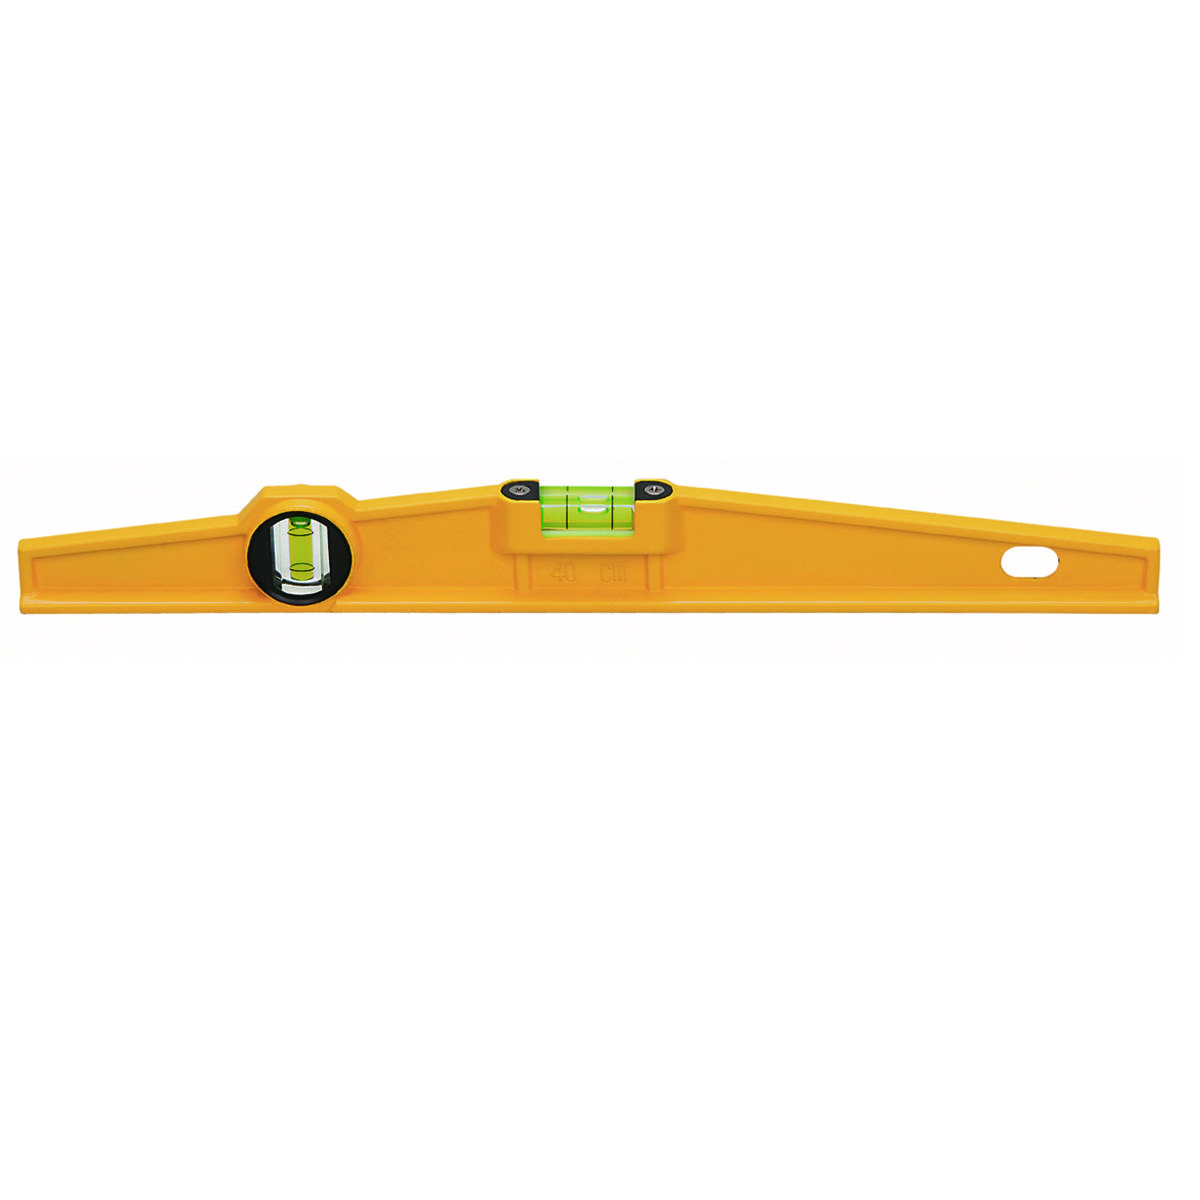 8 Year Exporter Square Ruler With Painted -